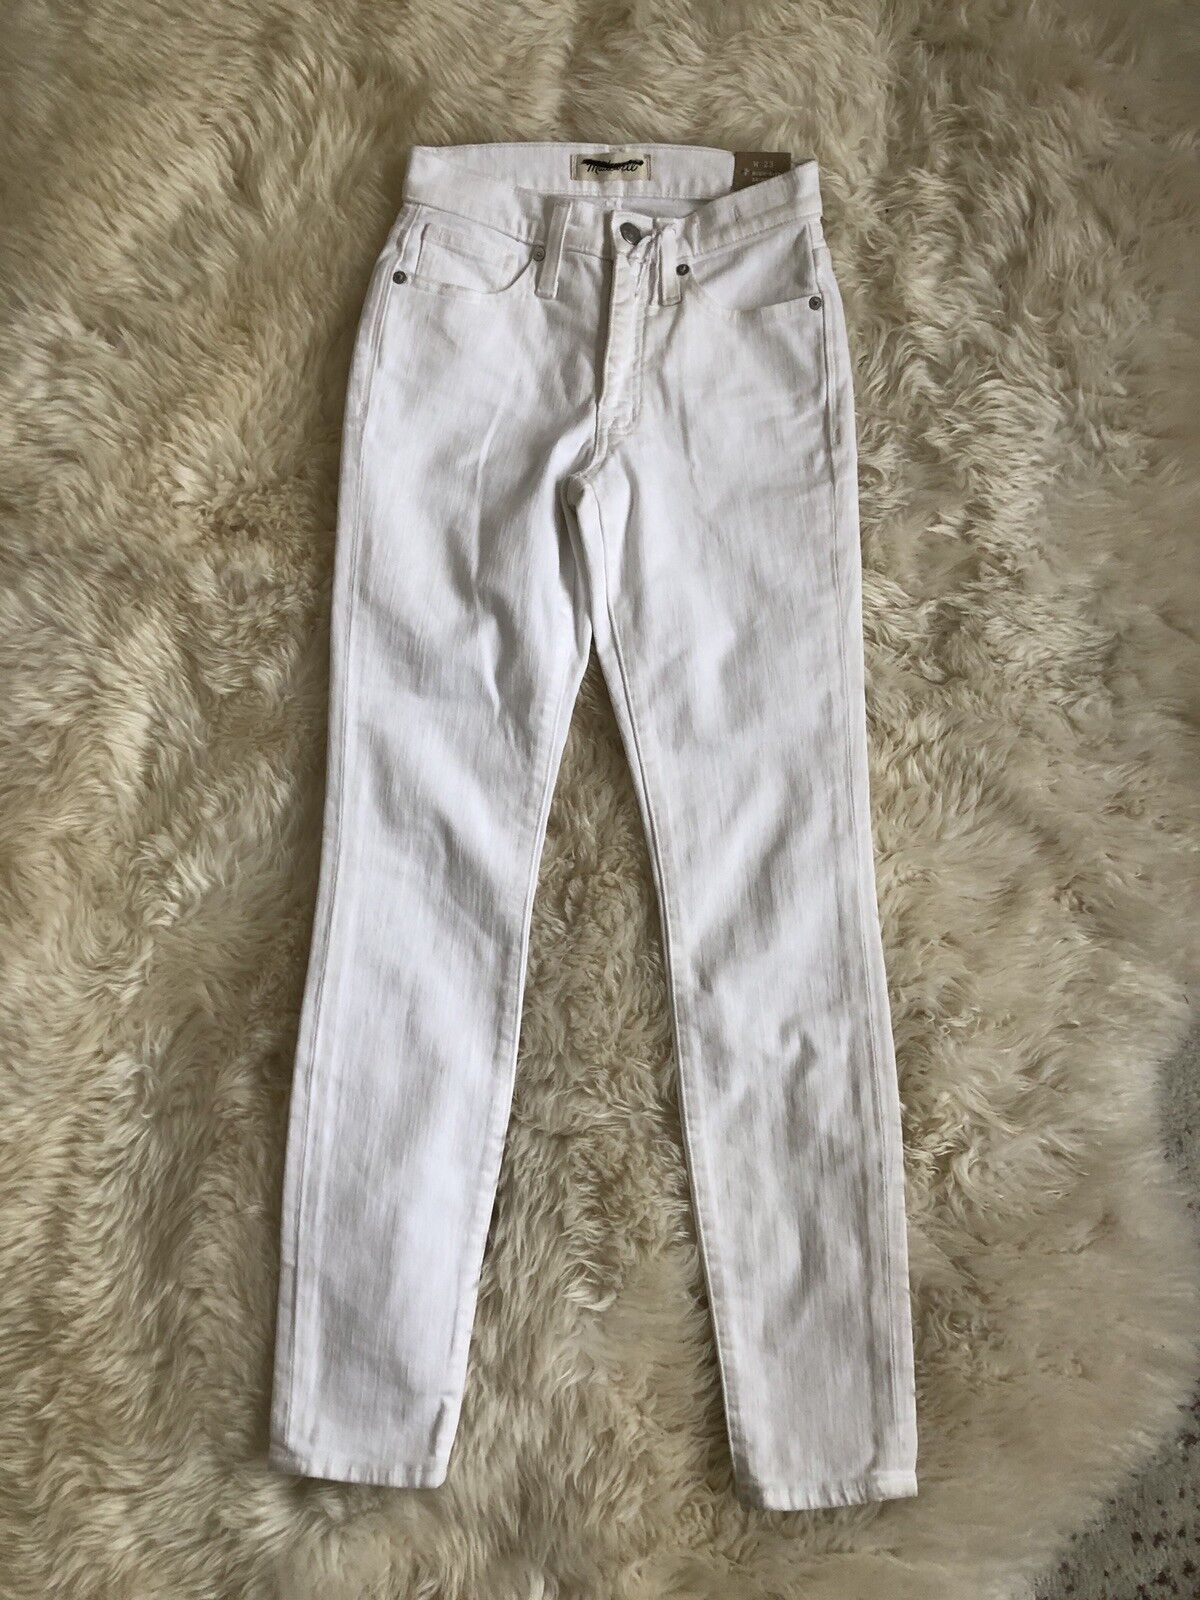 New Madewell 9  High-Rise Skinny Jeans in Pure White Sz 23 H5769